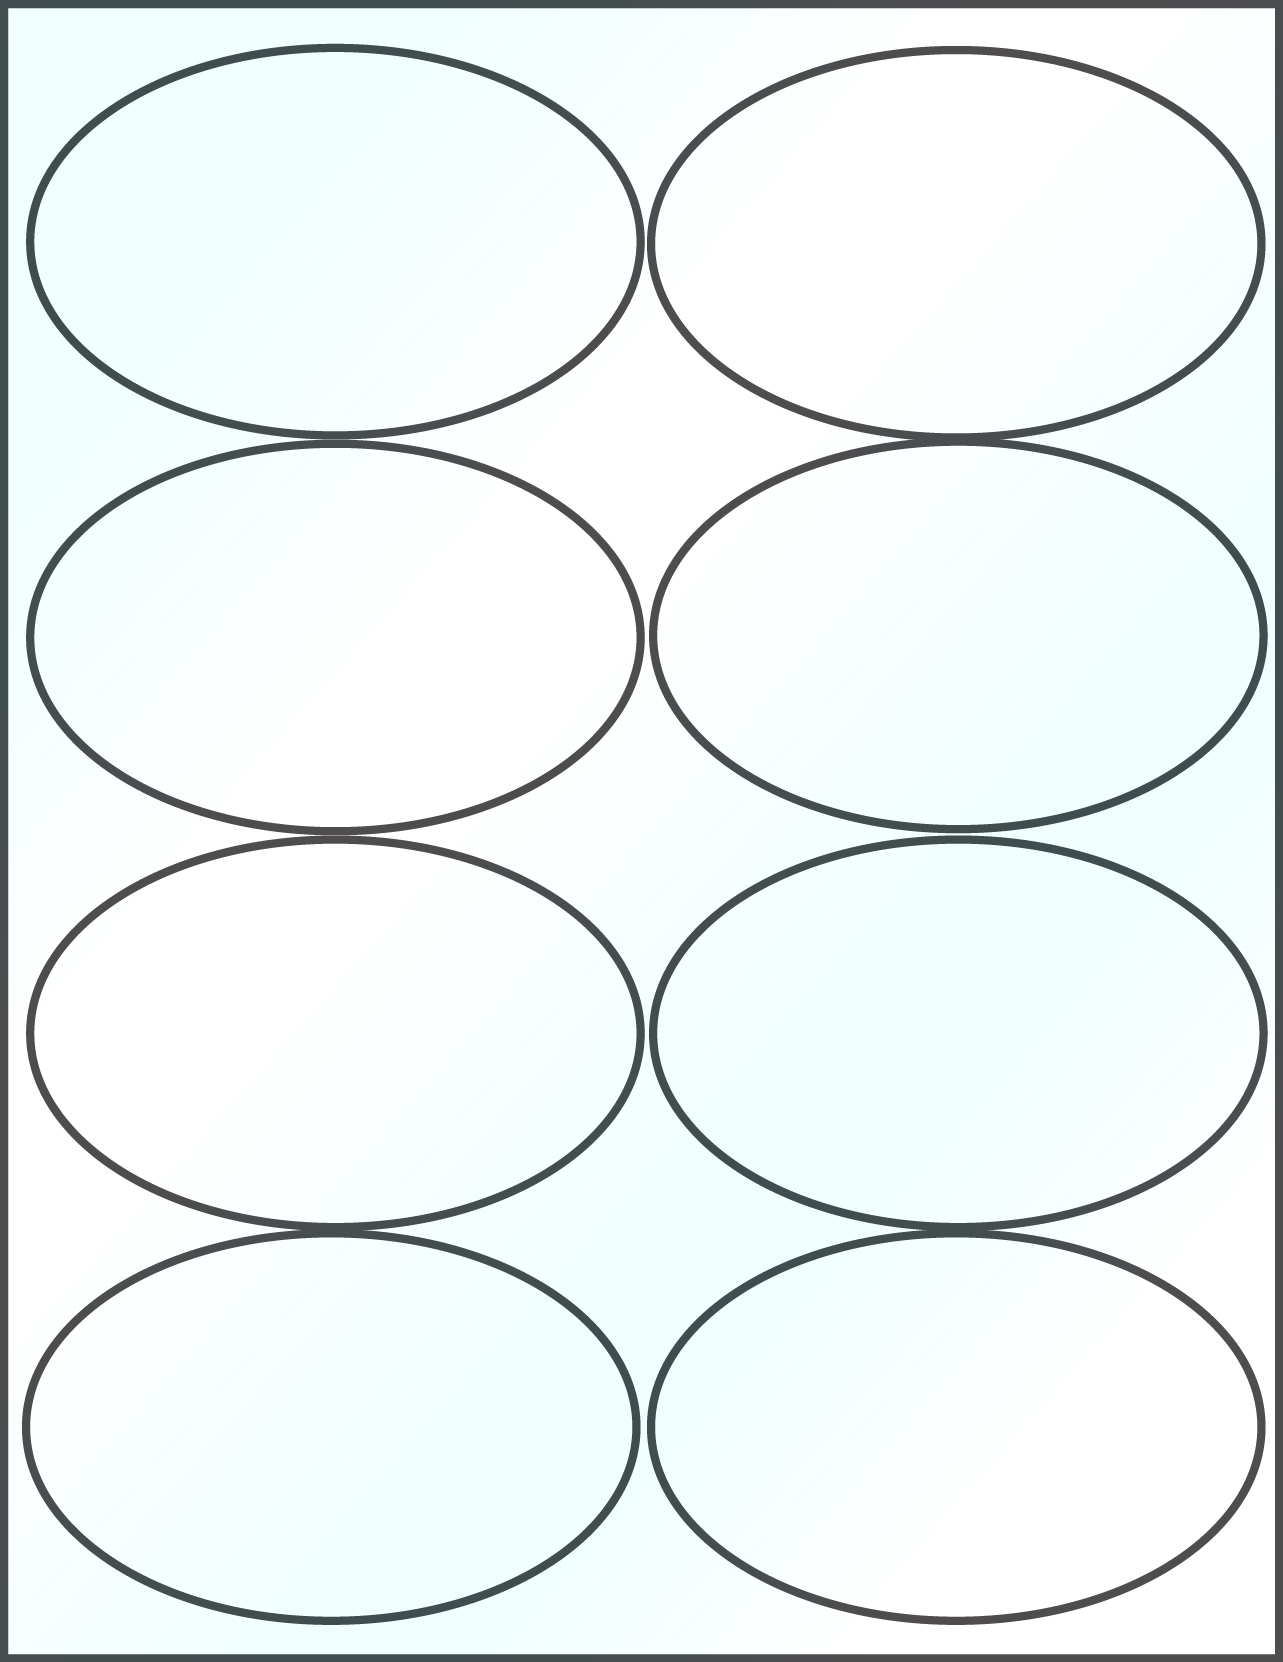 graphic regarding Oval Printable Labels identified as Oval 4 x 2 1/2 inch Distinct Shiny Laser Printable Labels 50 Sheets 4319C